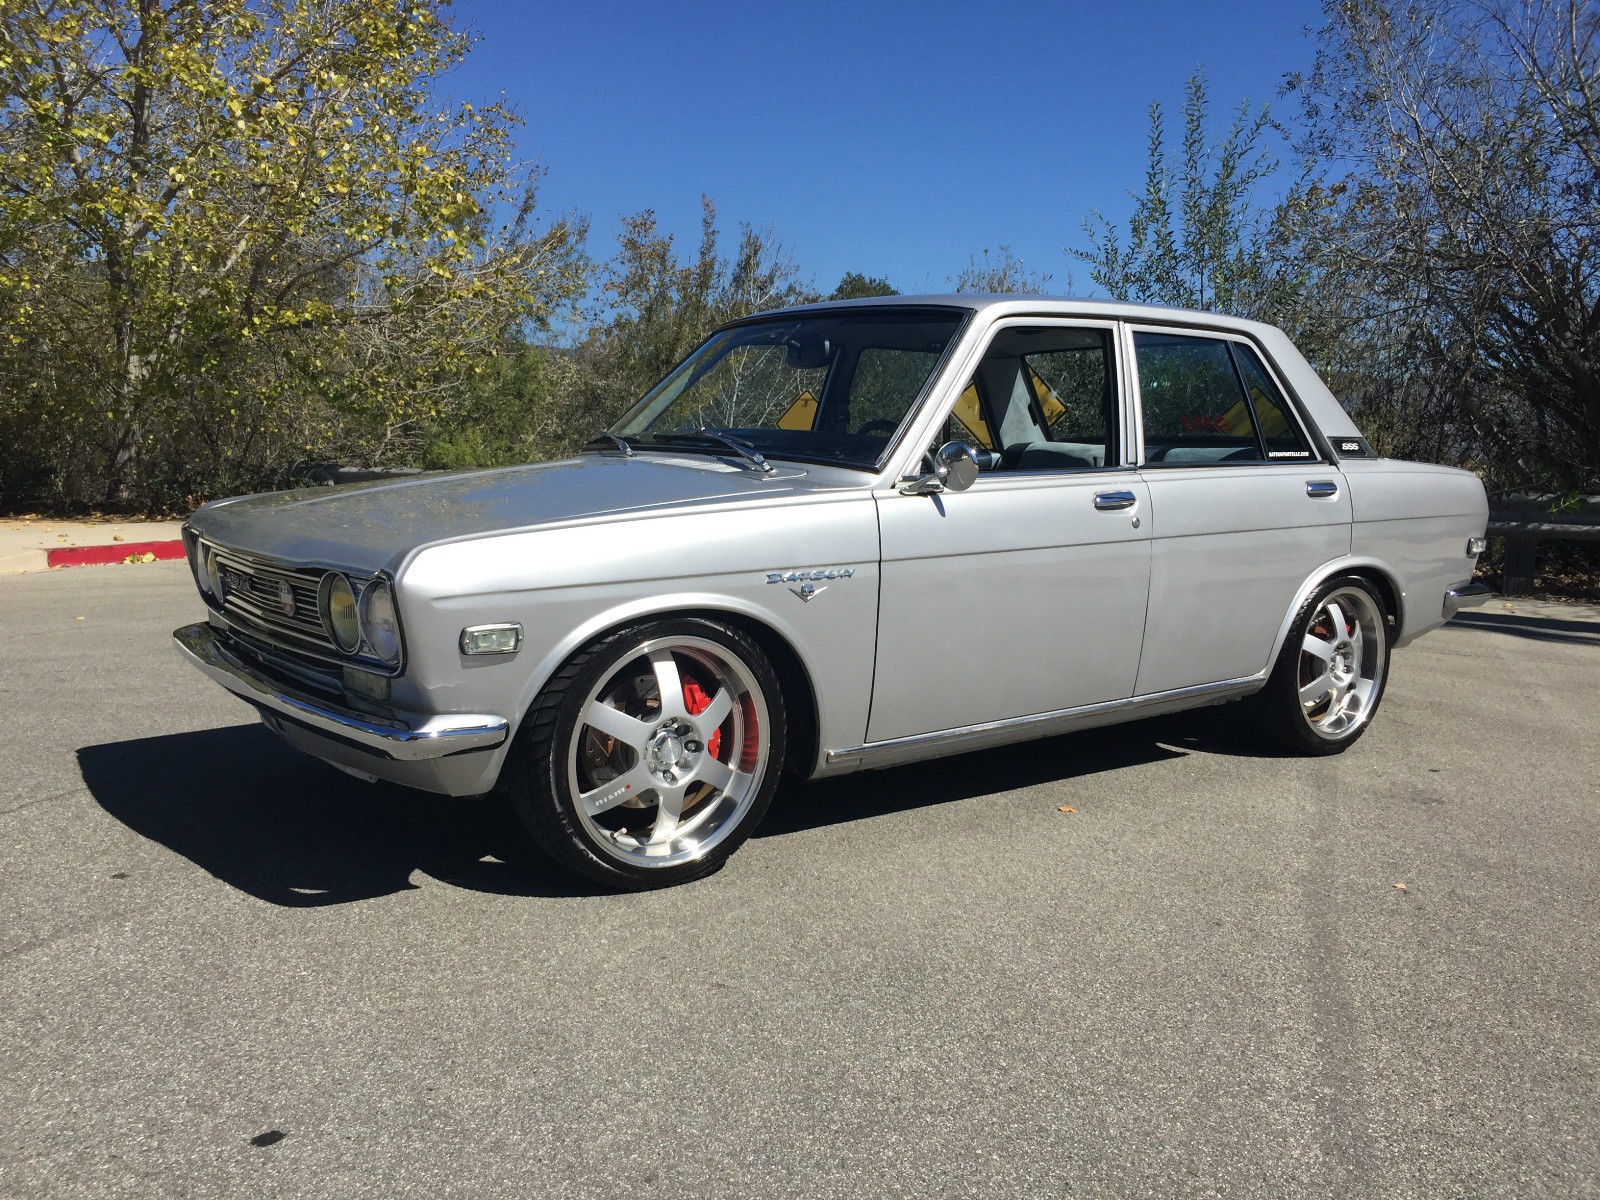 1971 Datsun 510 4 Door Sedan For Sale by Owner in Buellton